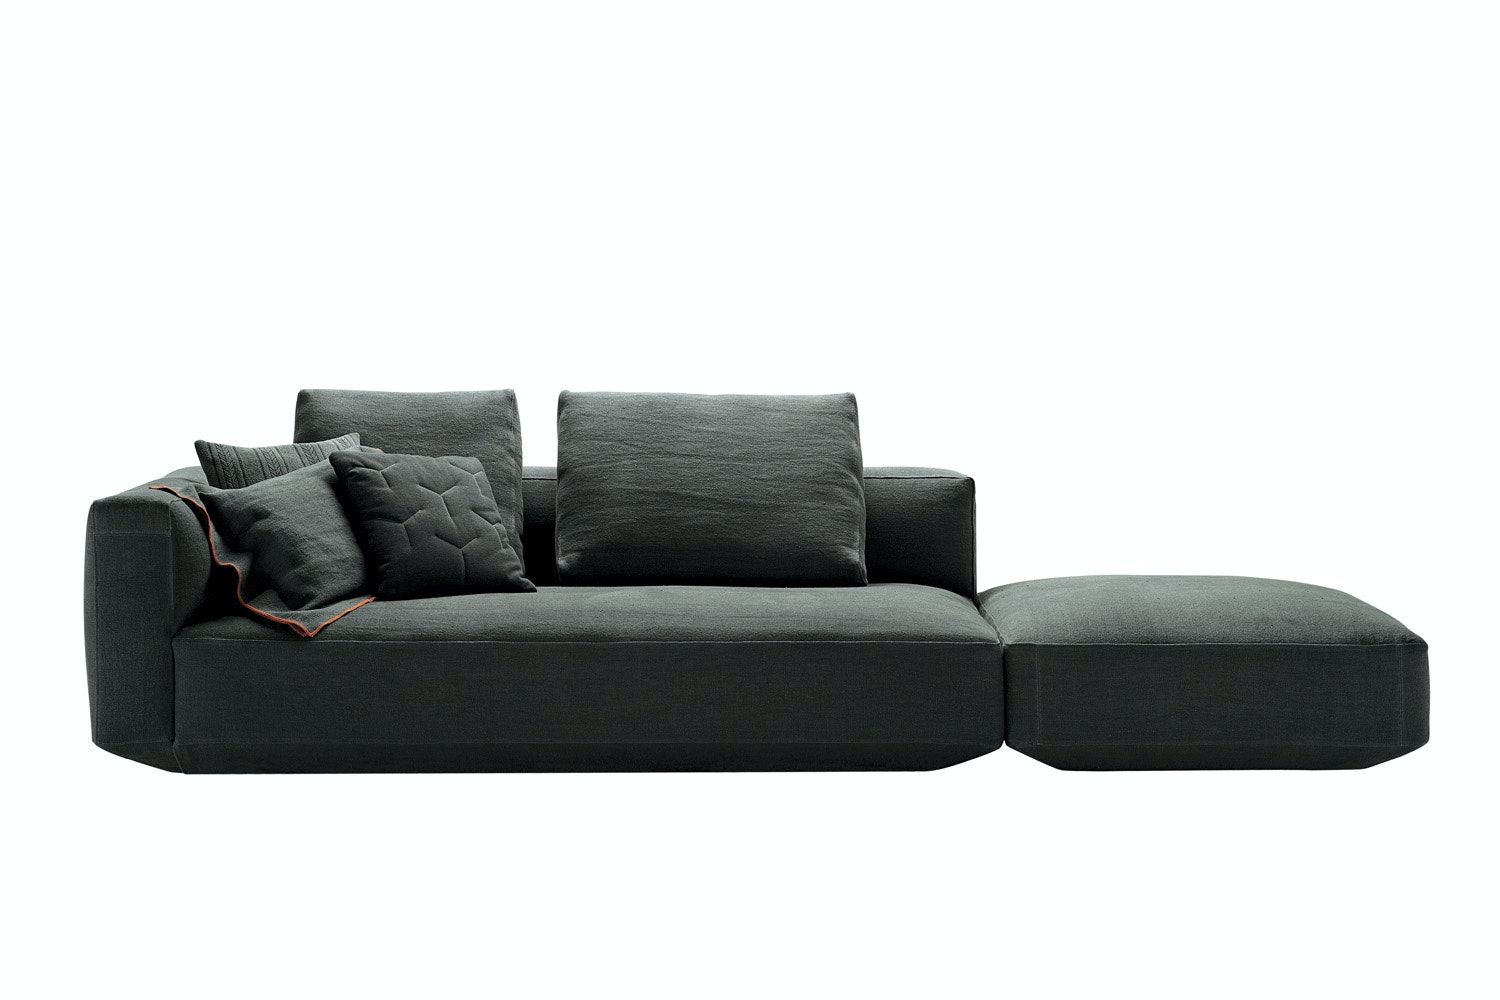 Pianoalto Sofa by Ludovica & Roberto Palomba for Zanotta